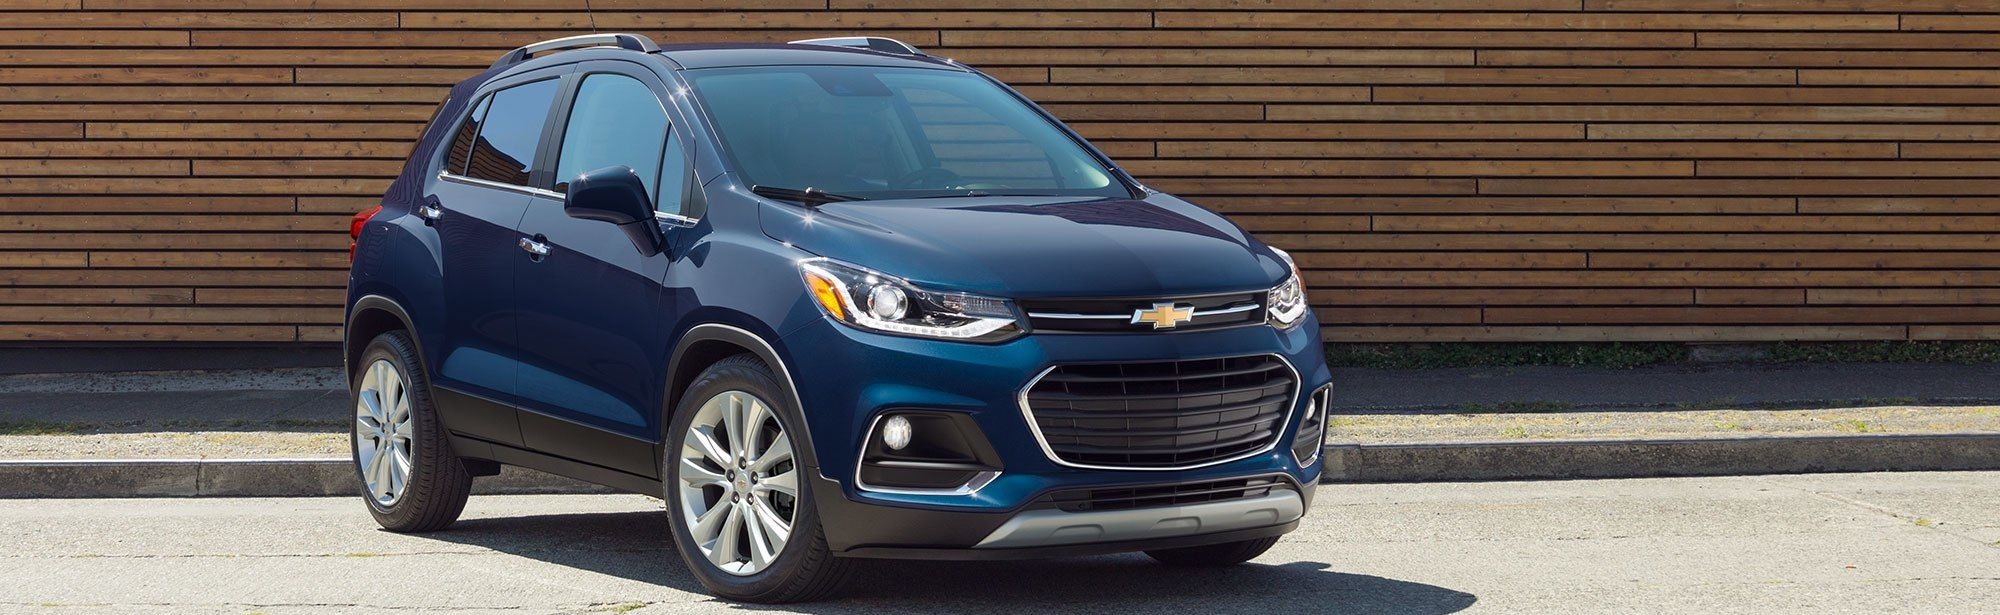 Used Chevrolet Trax for Sale in Youngstown, OH